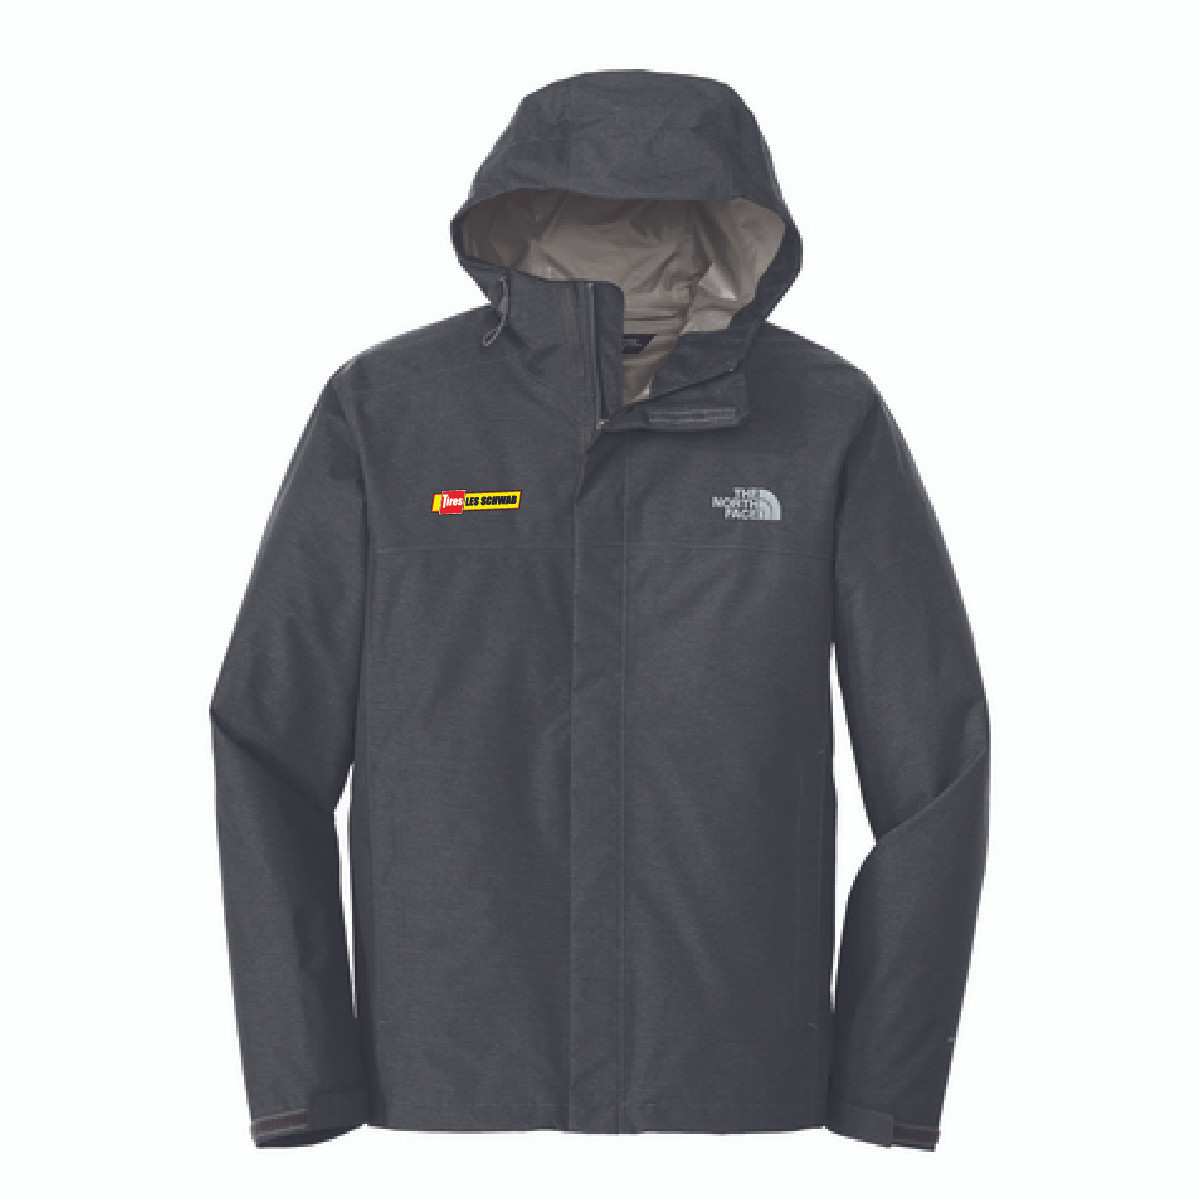 2a82d1de0 The North Face DryVent Rain Jacket